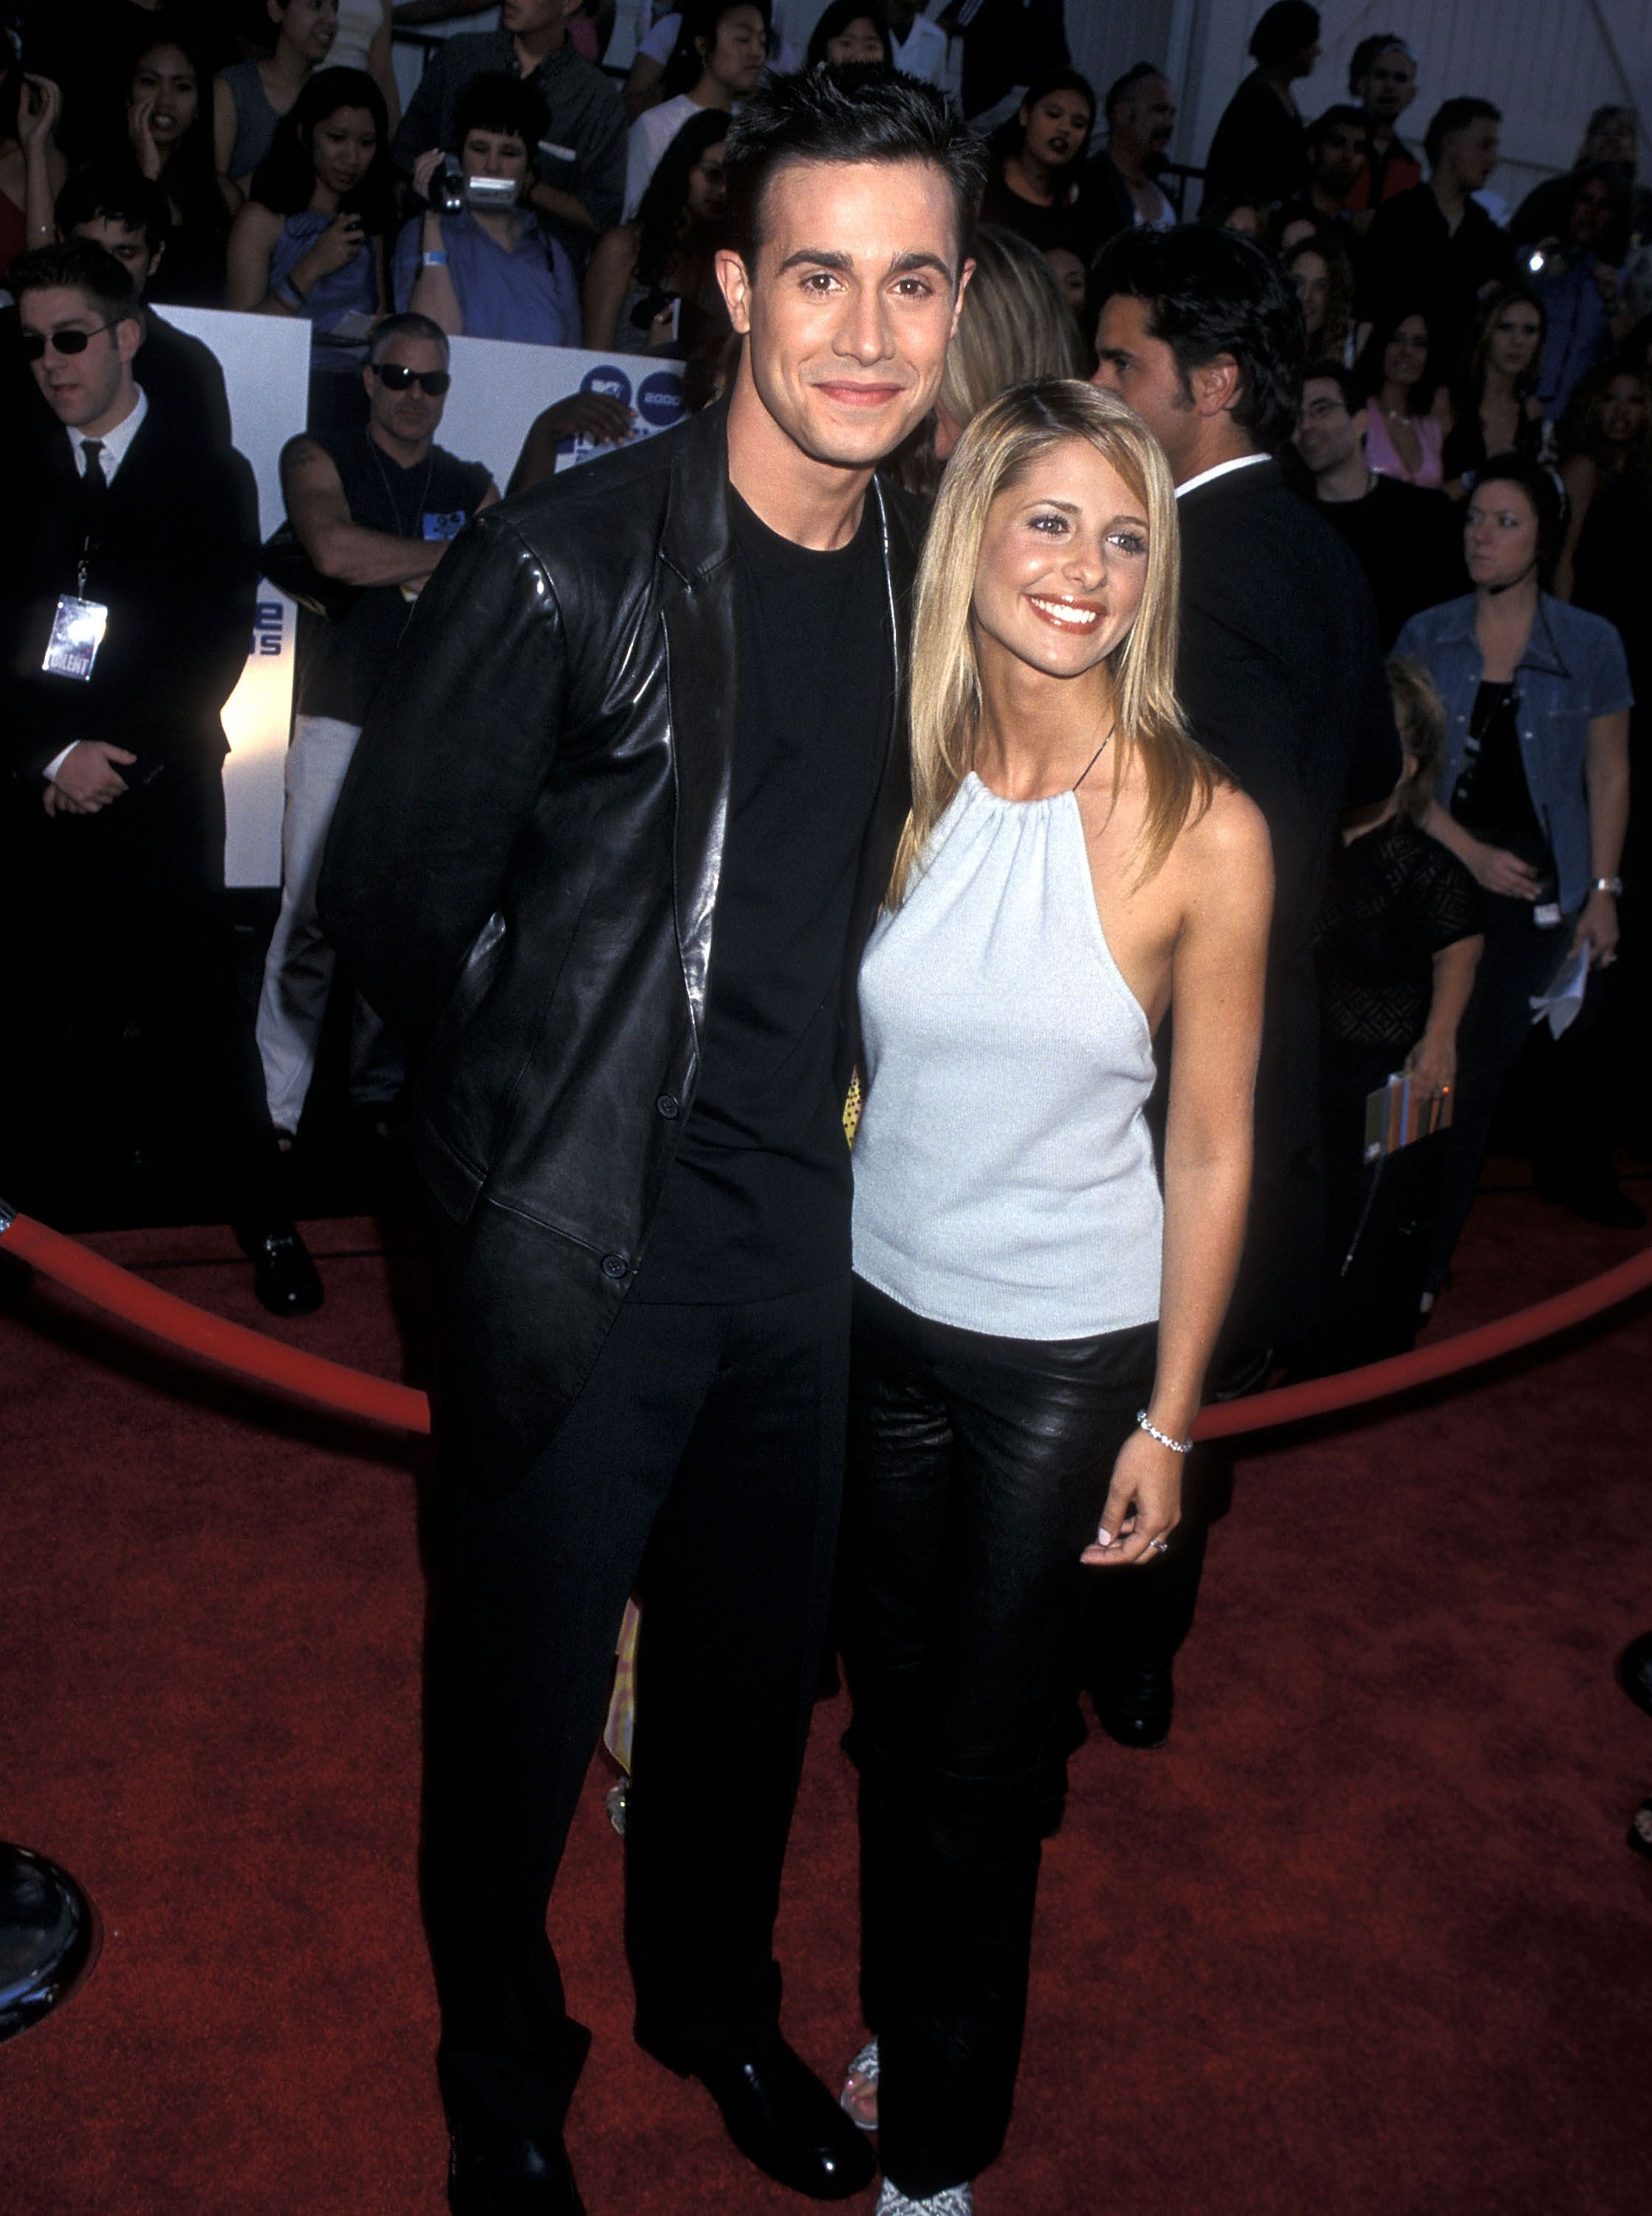 What Sarah Michelle Gellar And Freddie Prinze Jr.'s Body Language Says About Their Marriage